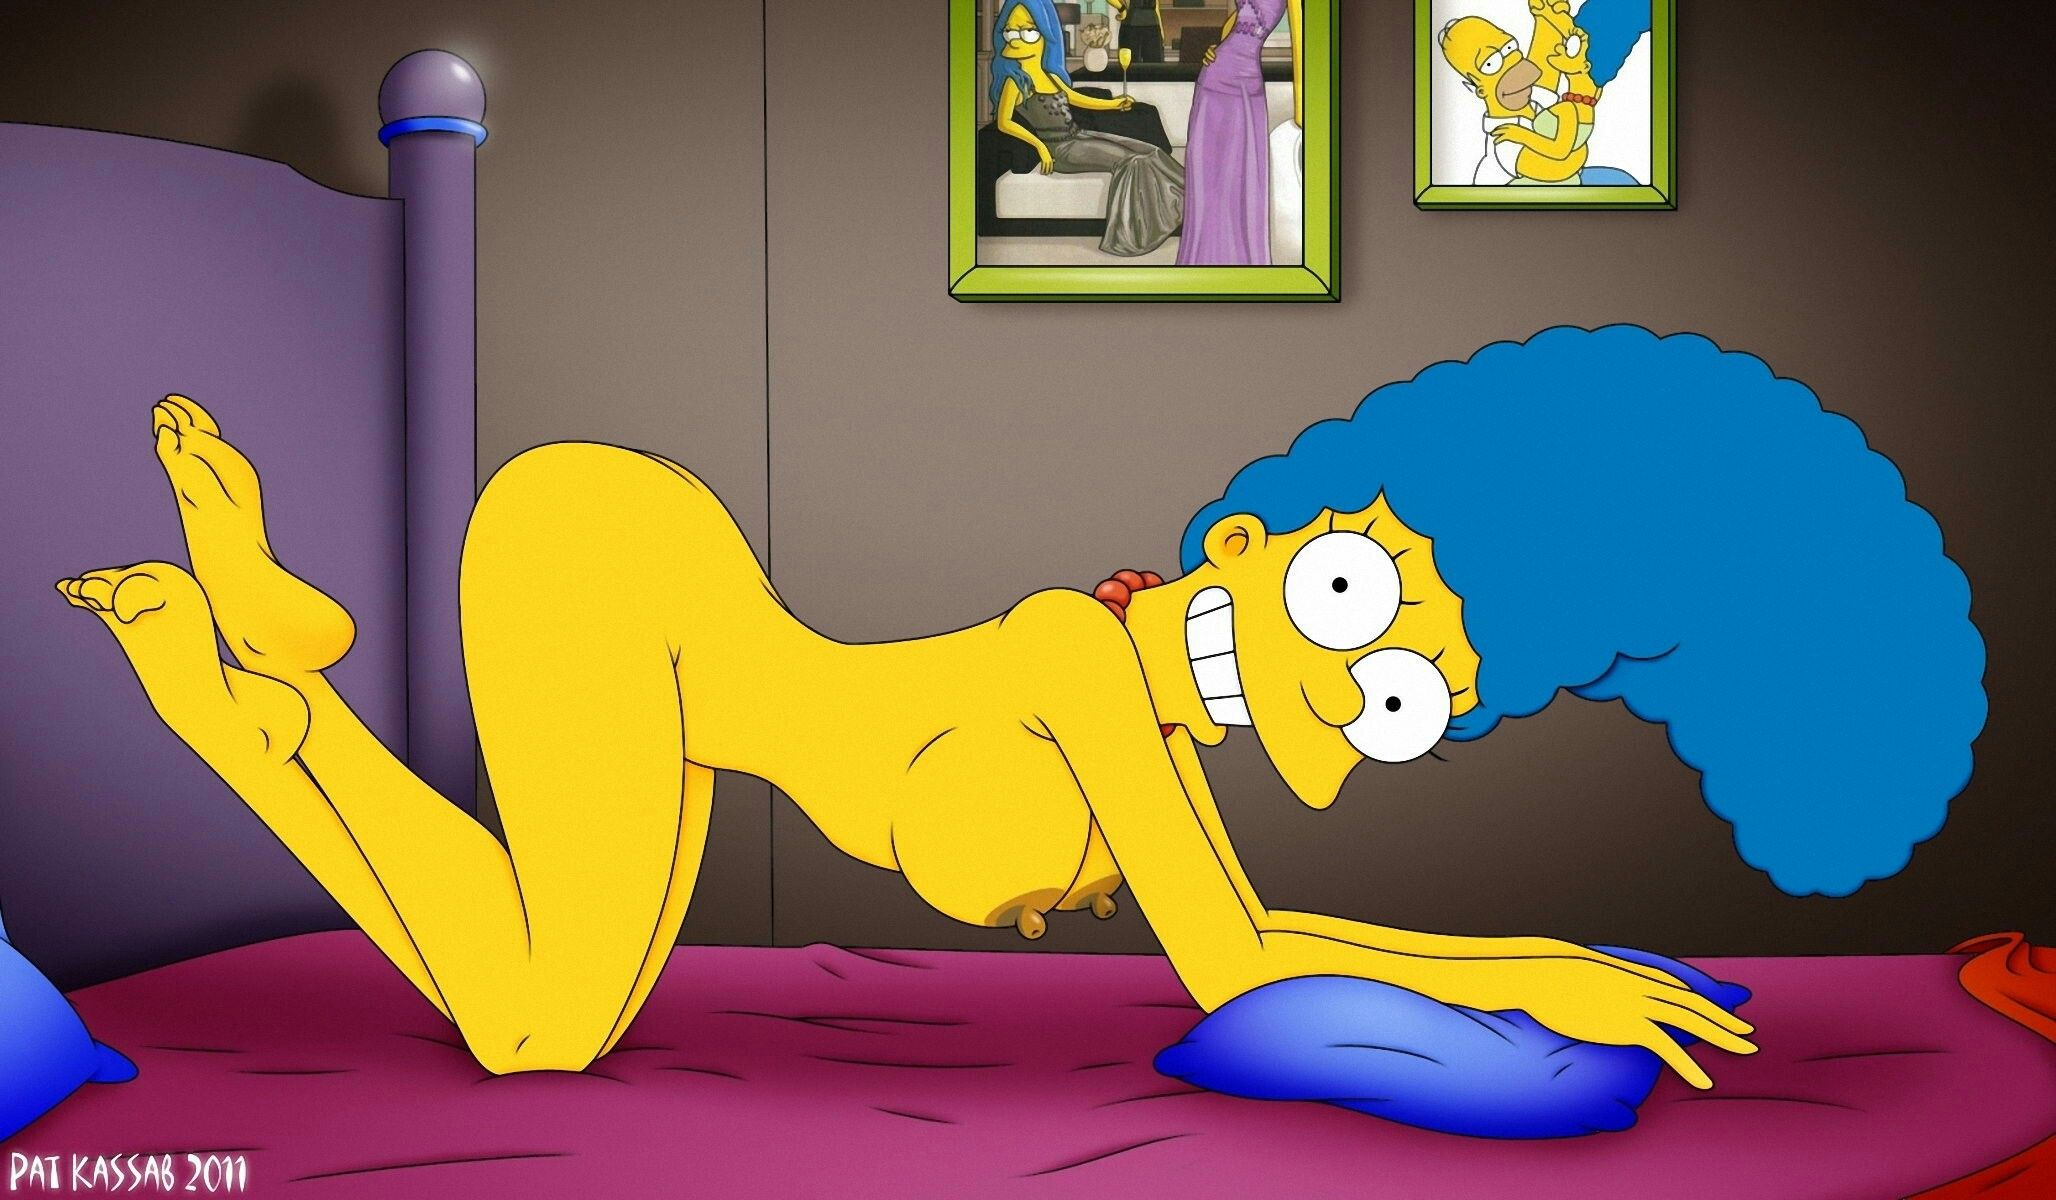 simpson nude The Simpson Marge Simpson Erotic Anatomical